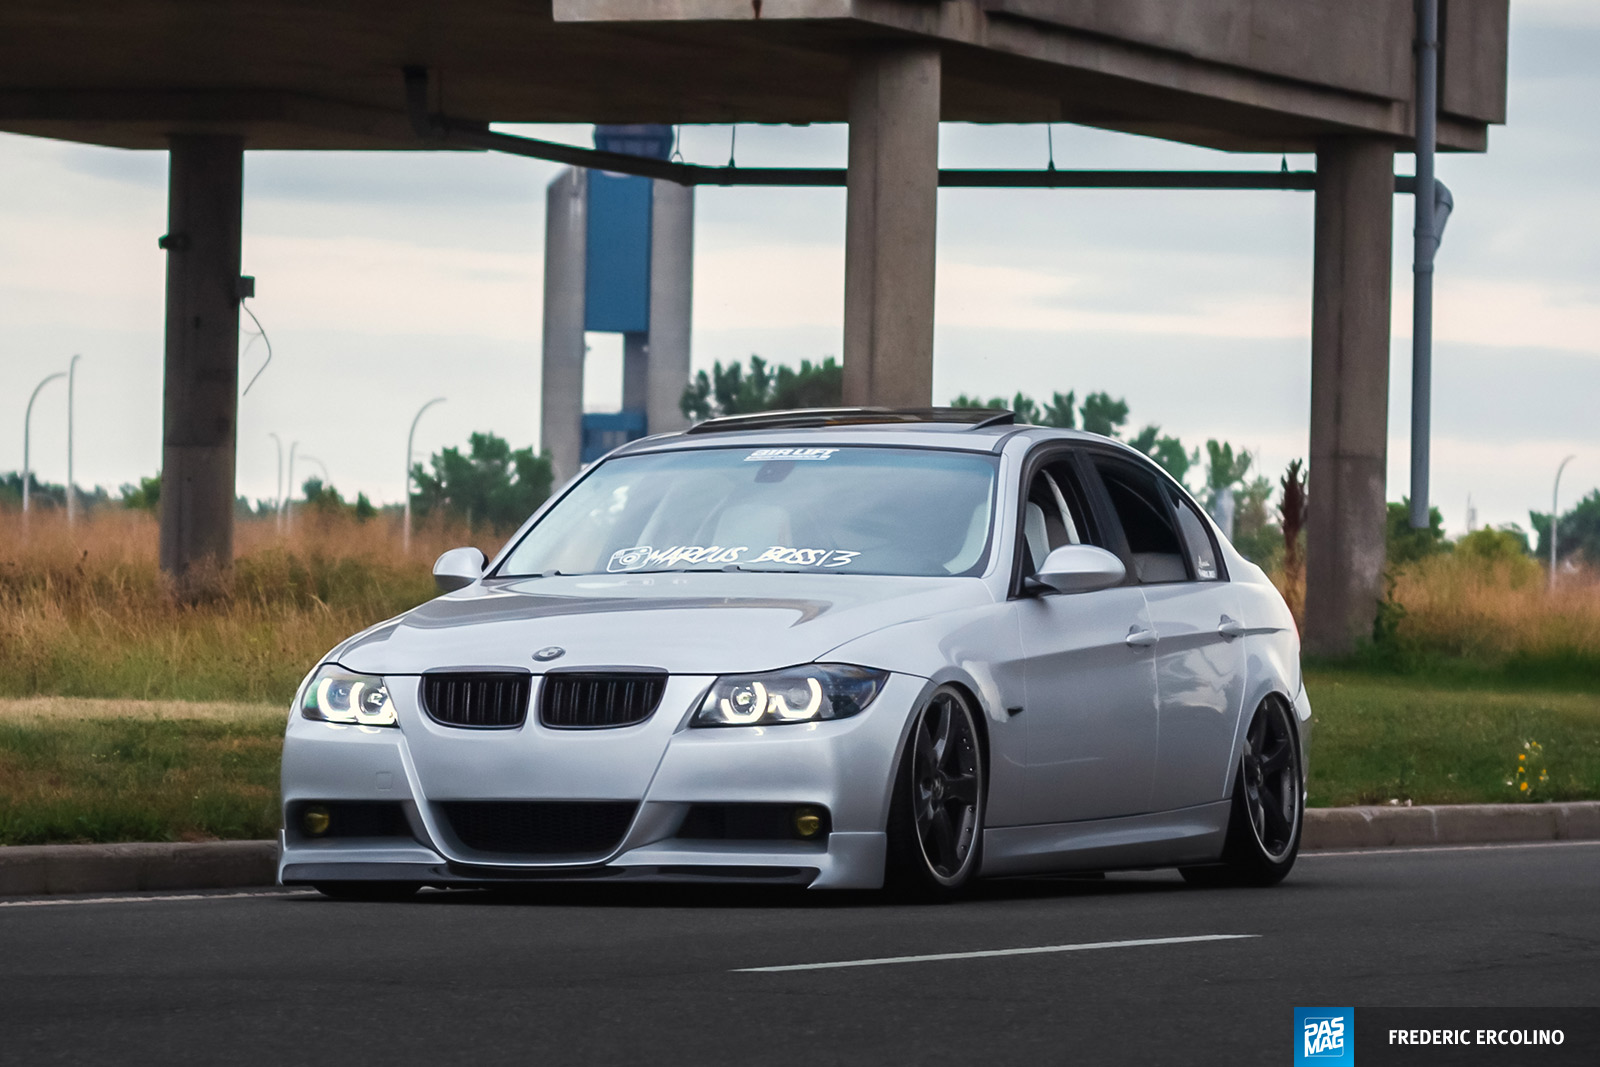 19 Marc Antoine Jeanson 2007 BMW 323i pasmag tuner battlegrounds